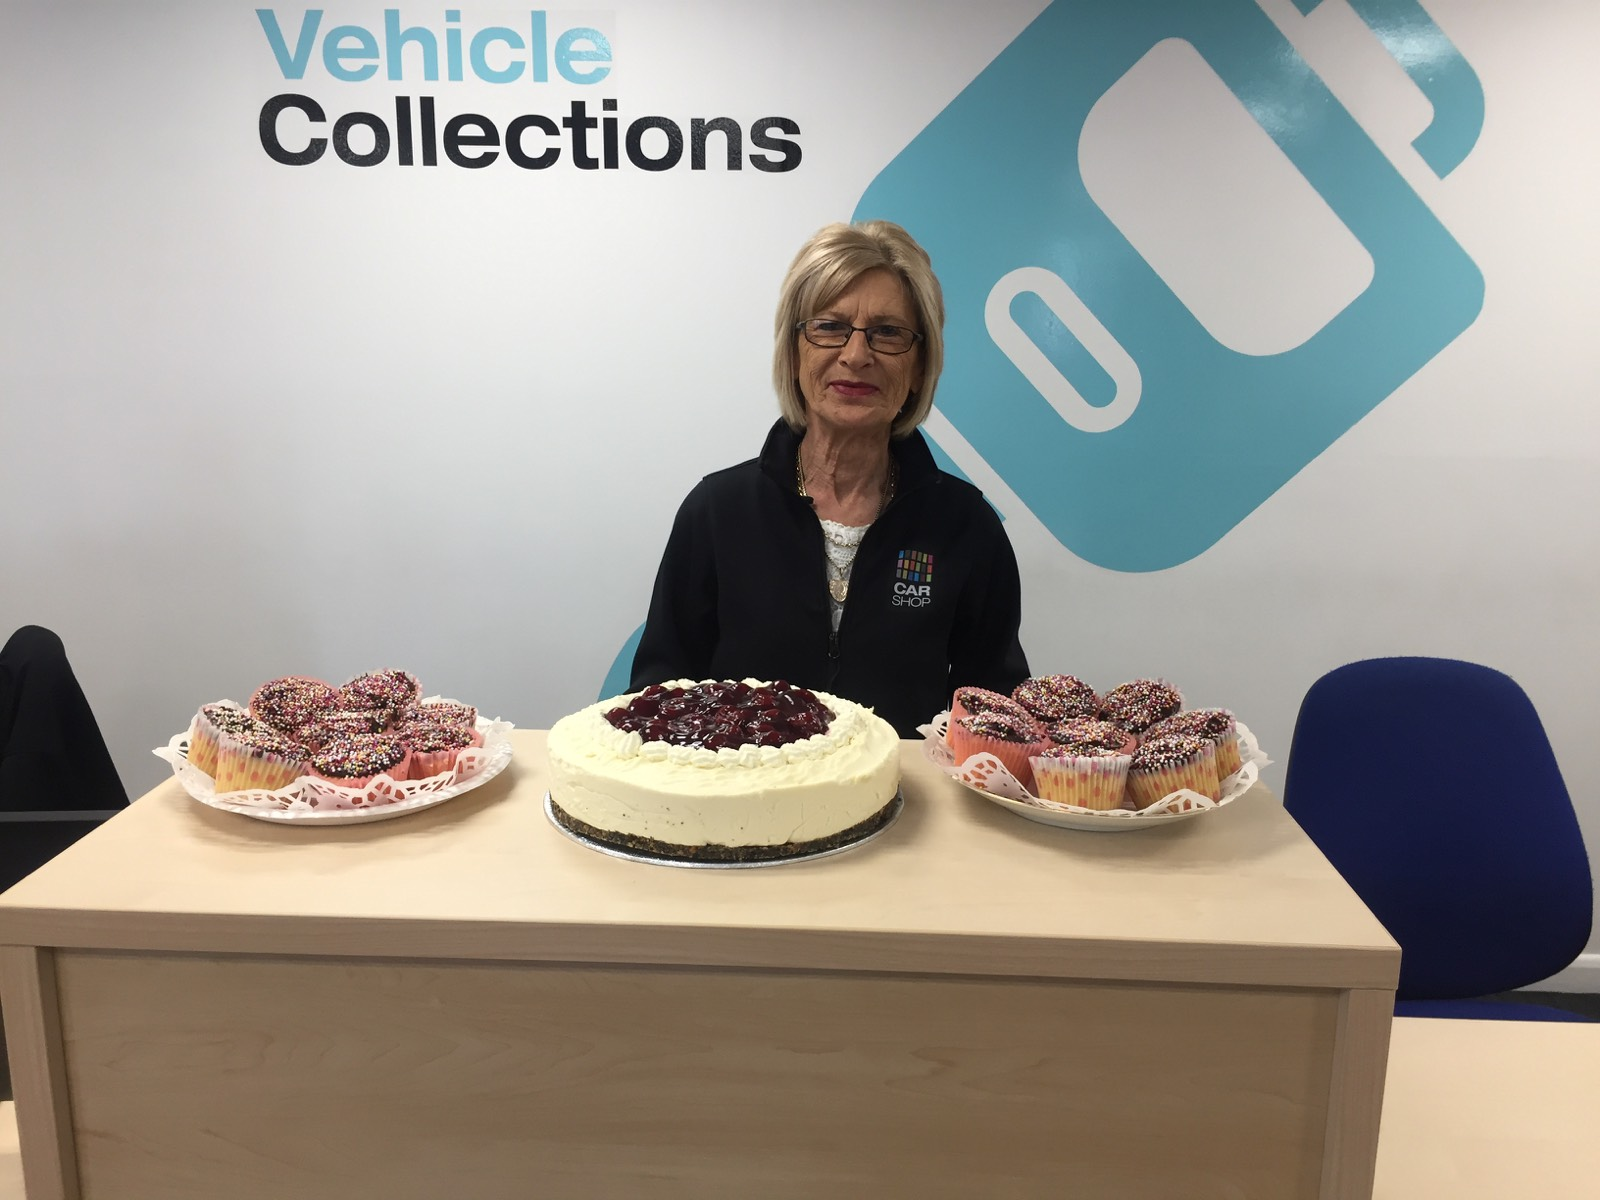 News: CarShop celebrate World Baking Day